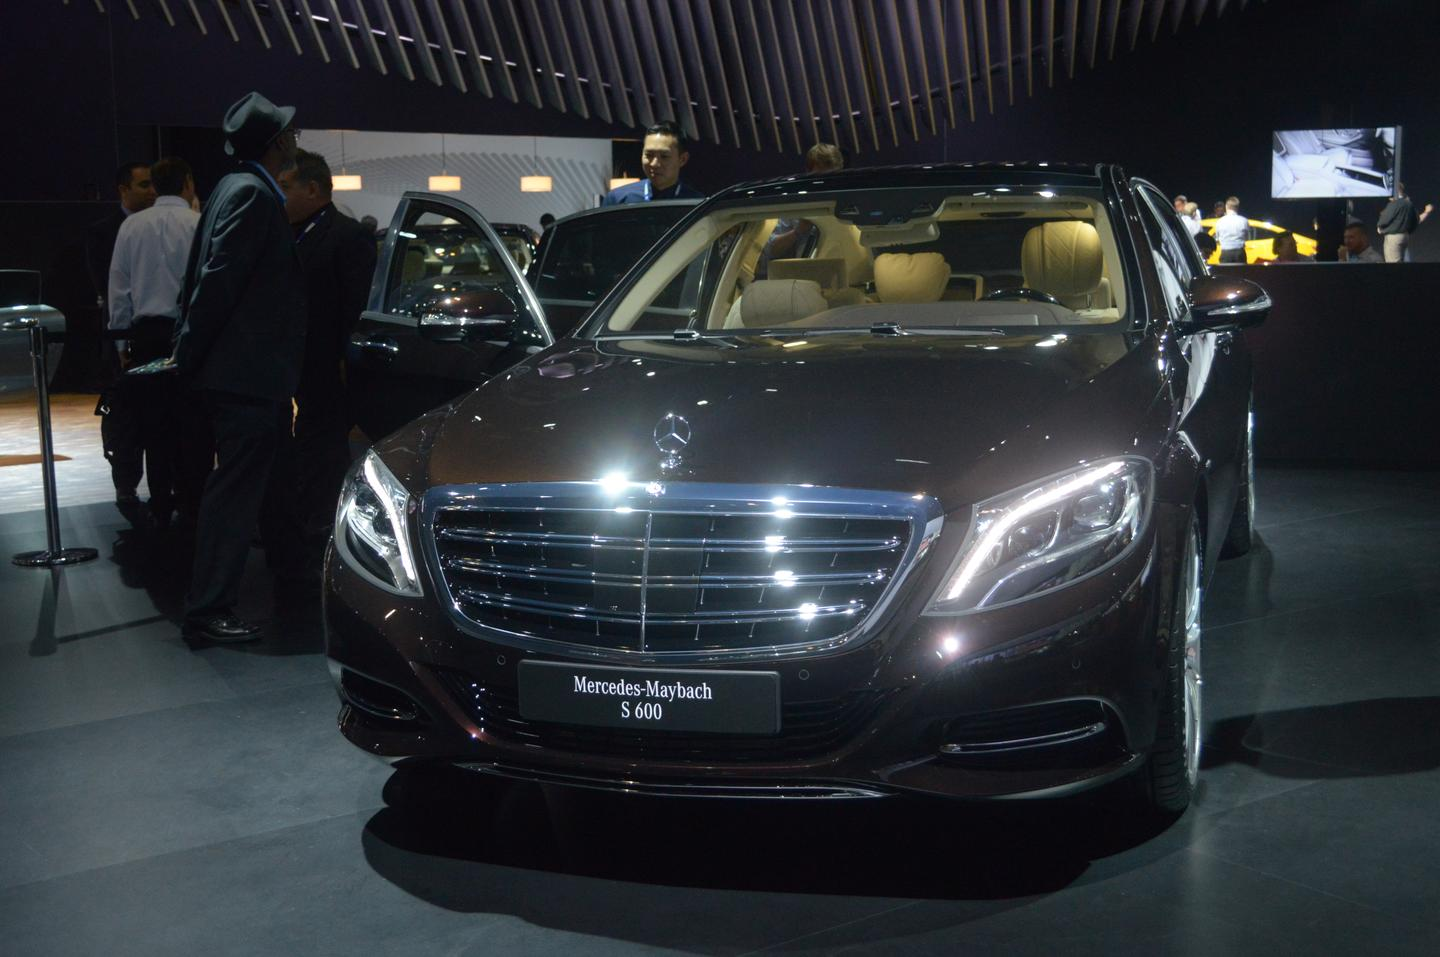 The Mercedes-Maybach S600 is an ultra high-end flagship for the German brand (Photo: C.C Weiss/Gizmag)